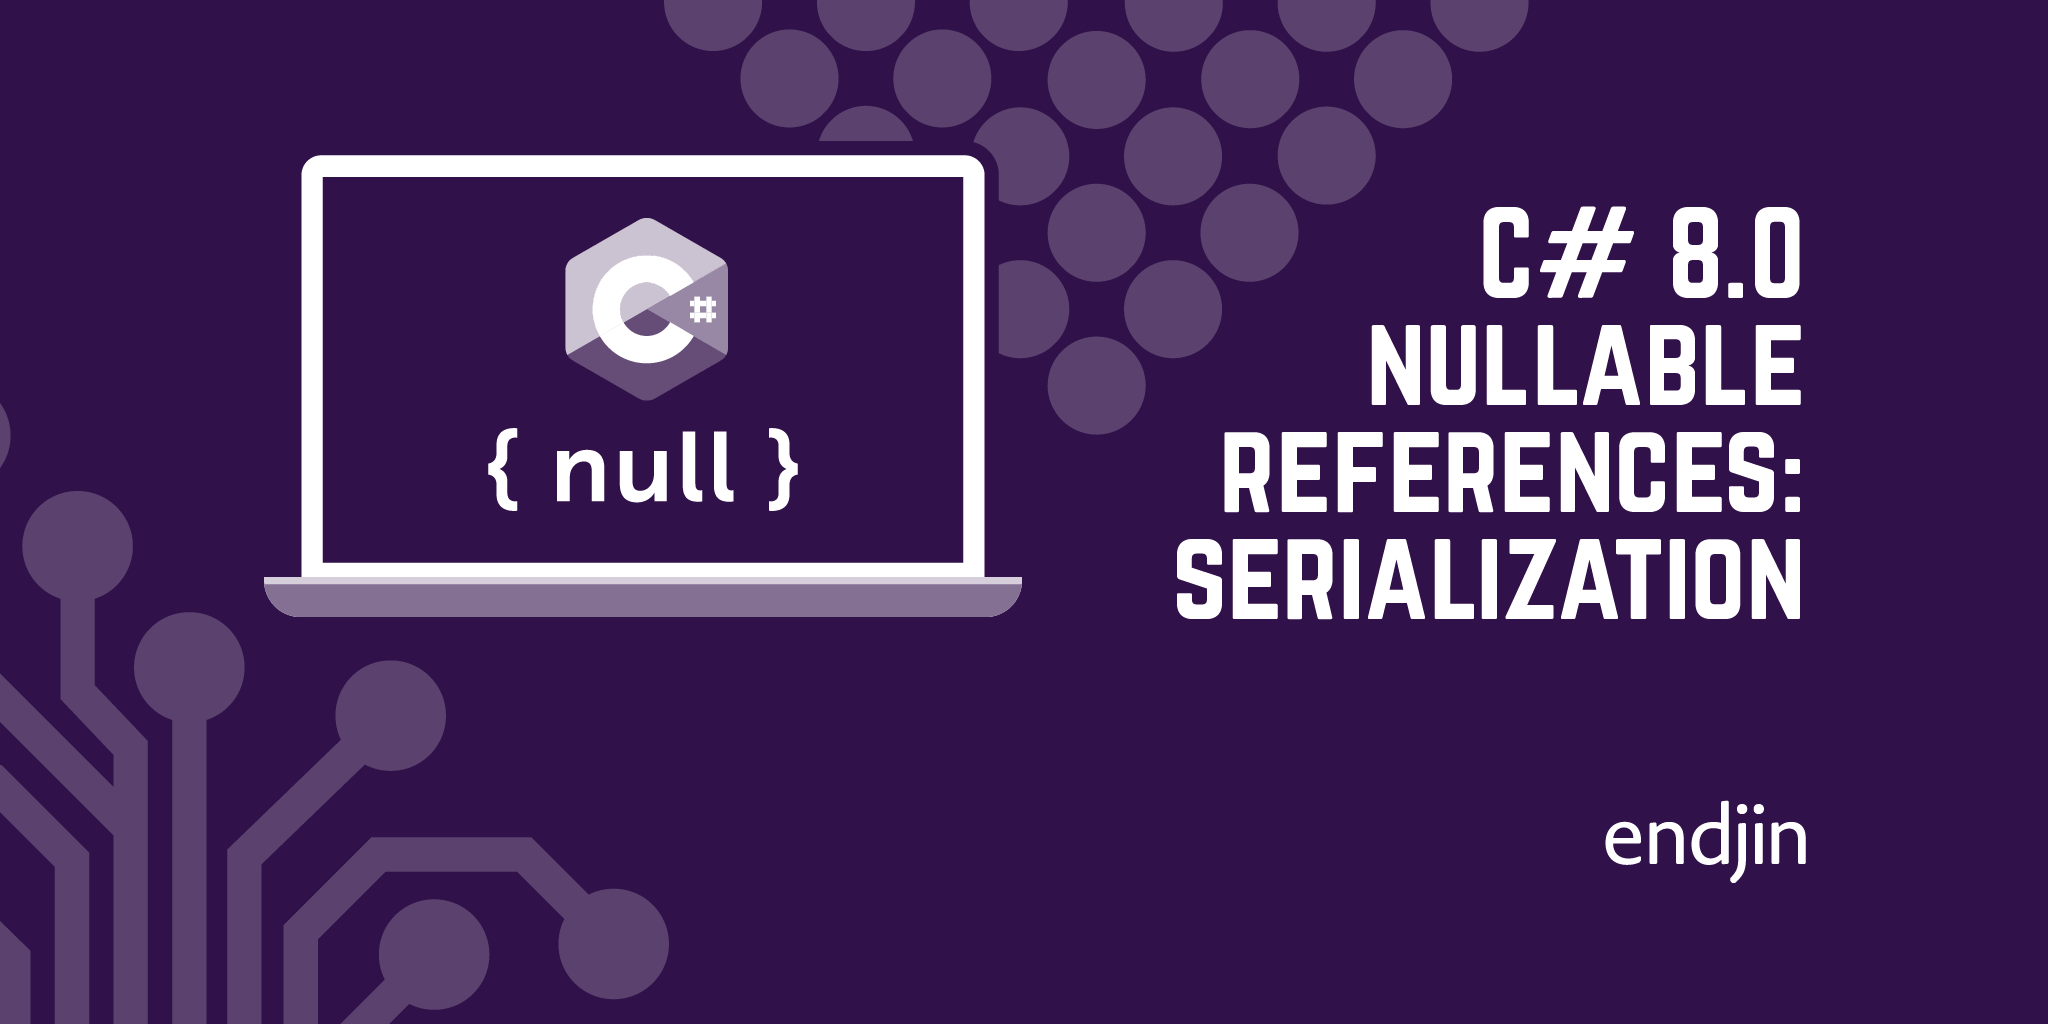 C# 8.0 nullable references and serialization